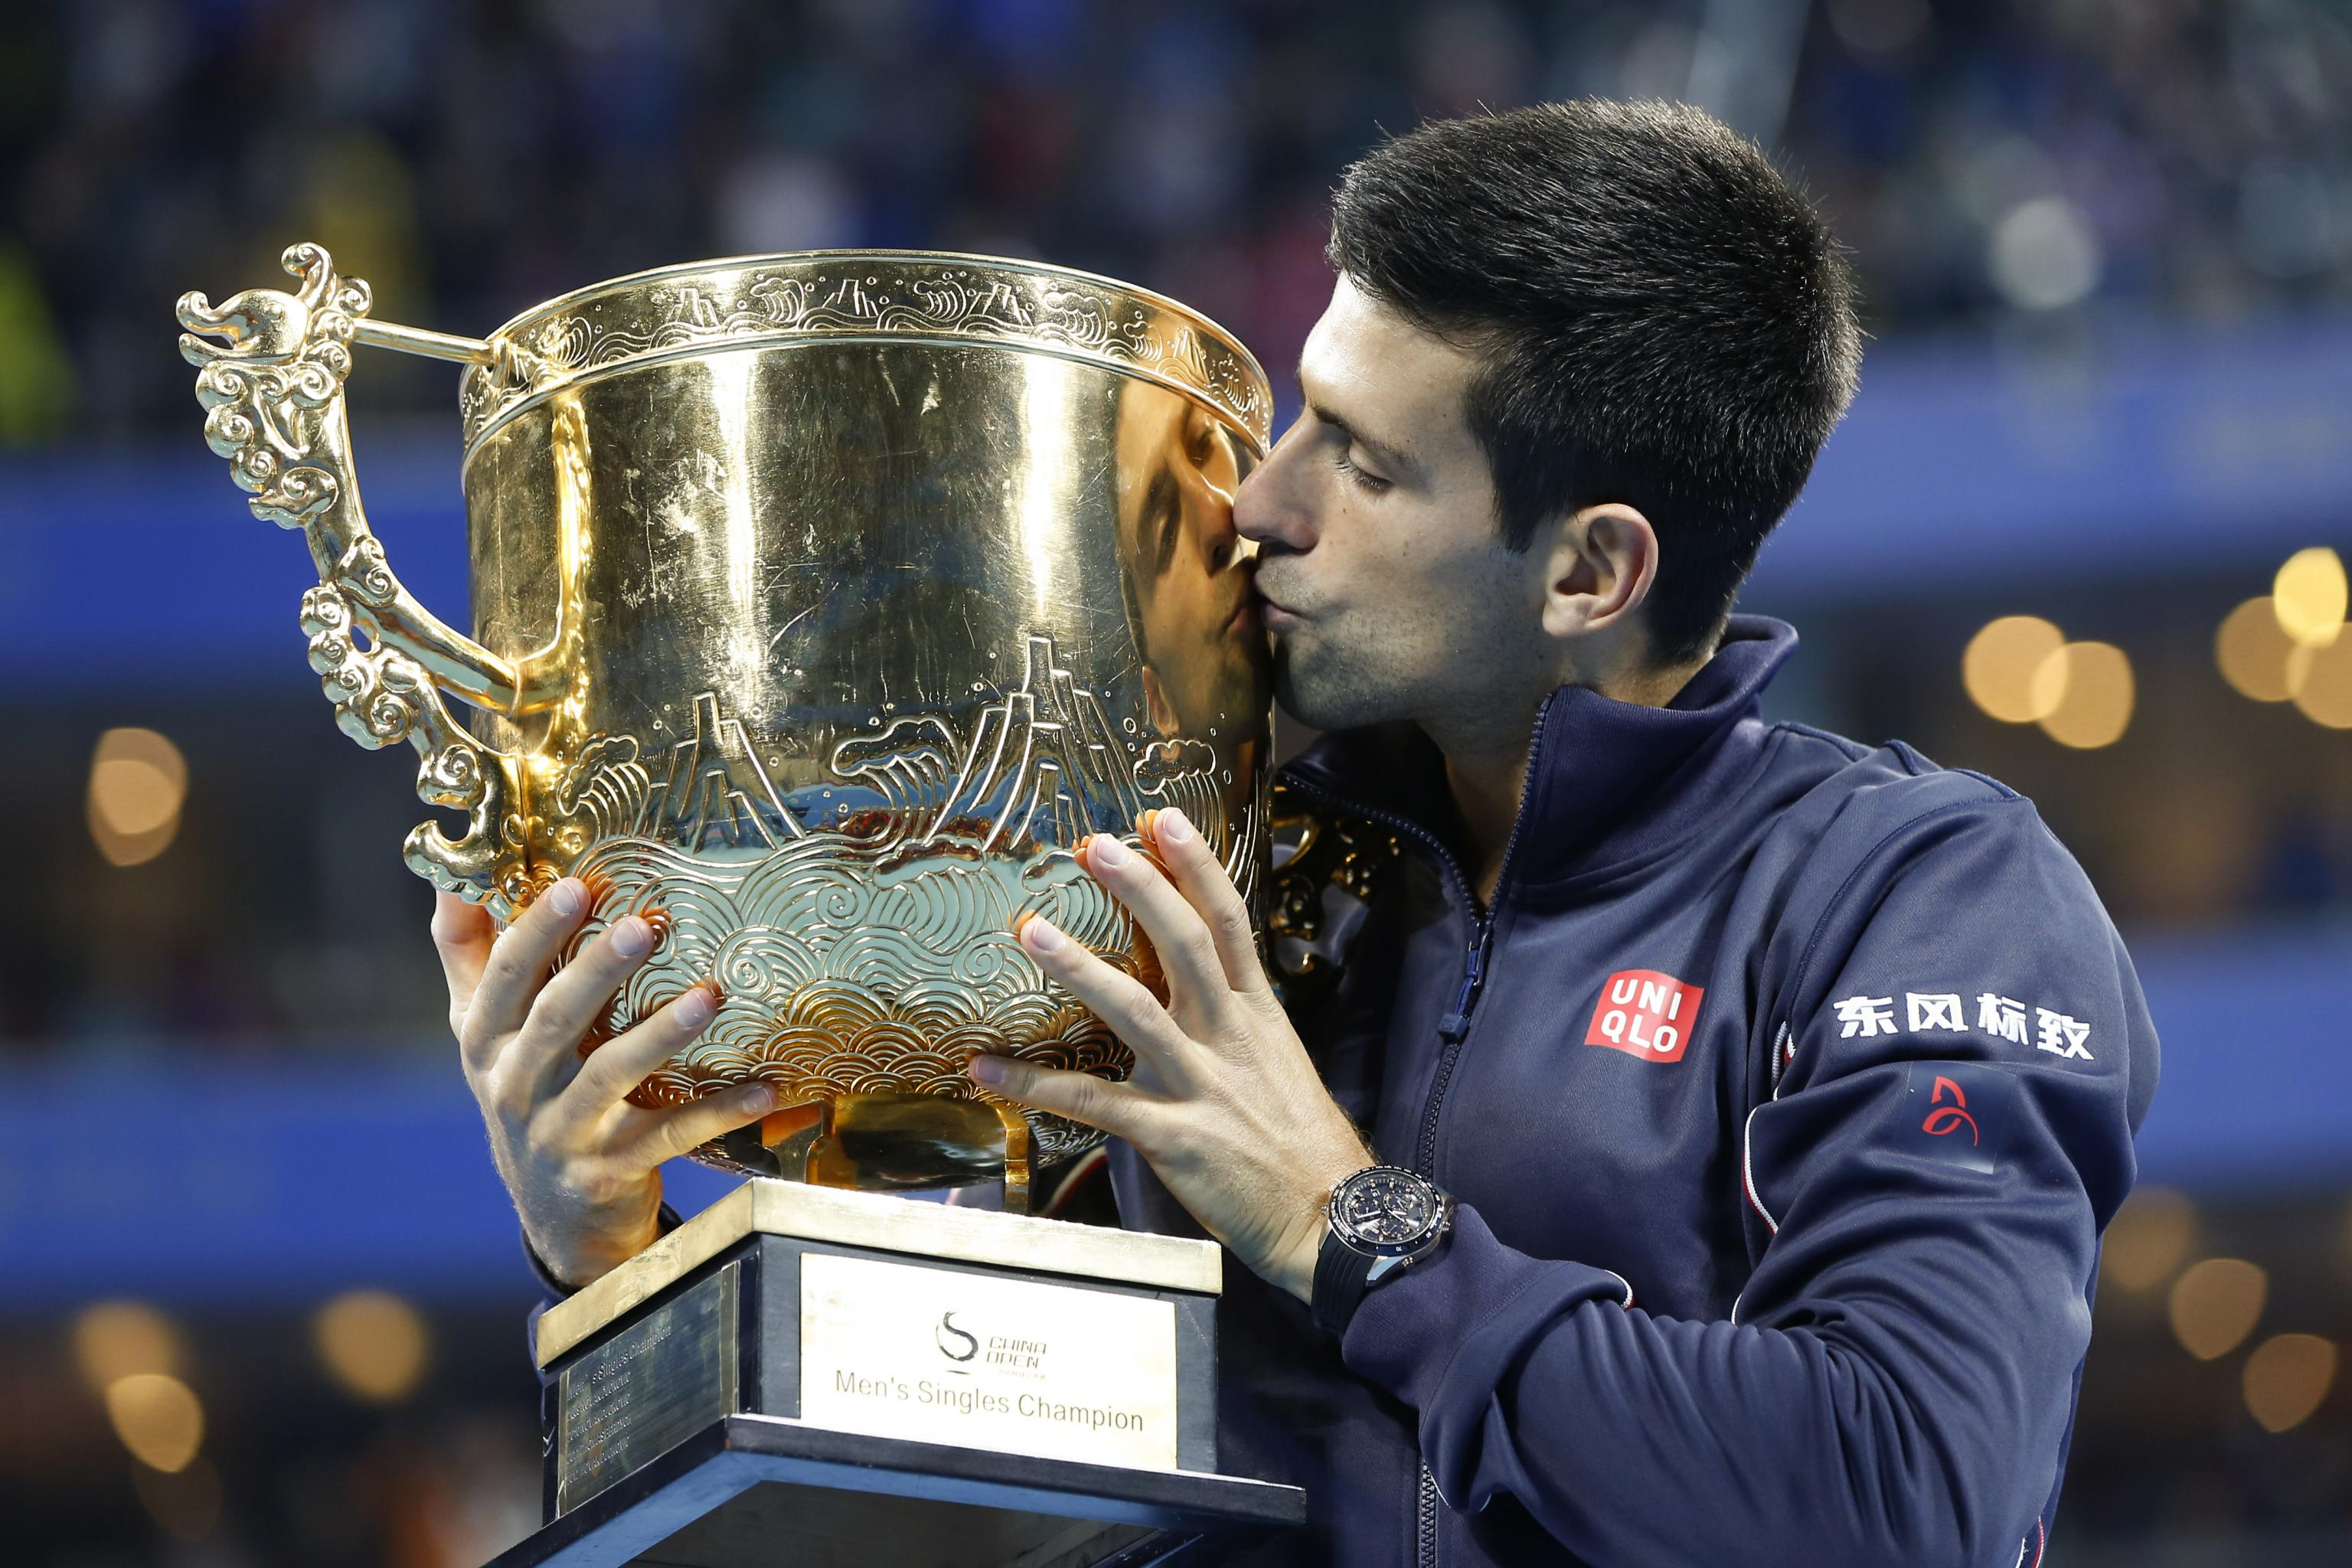 Novak Djokovic S Late Season Form Will Lead To 4th World Tour Finals Trophy Bleacher Report Latest News Videos And Highlights